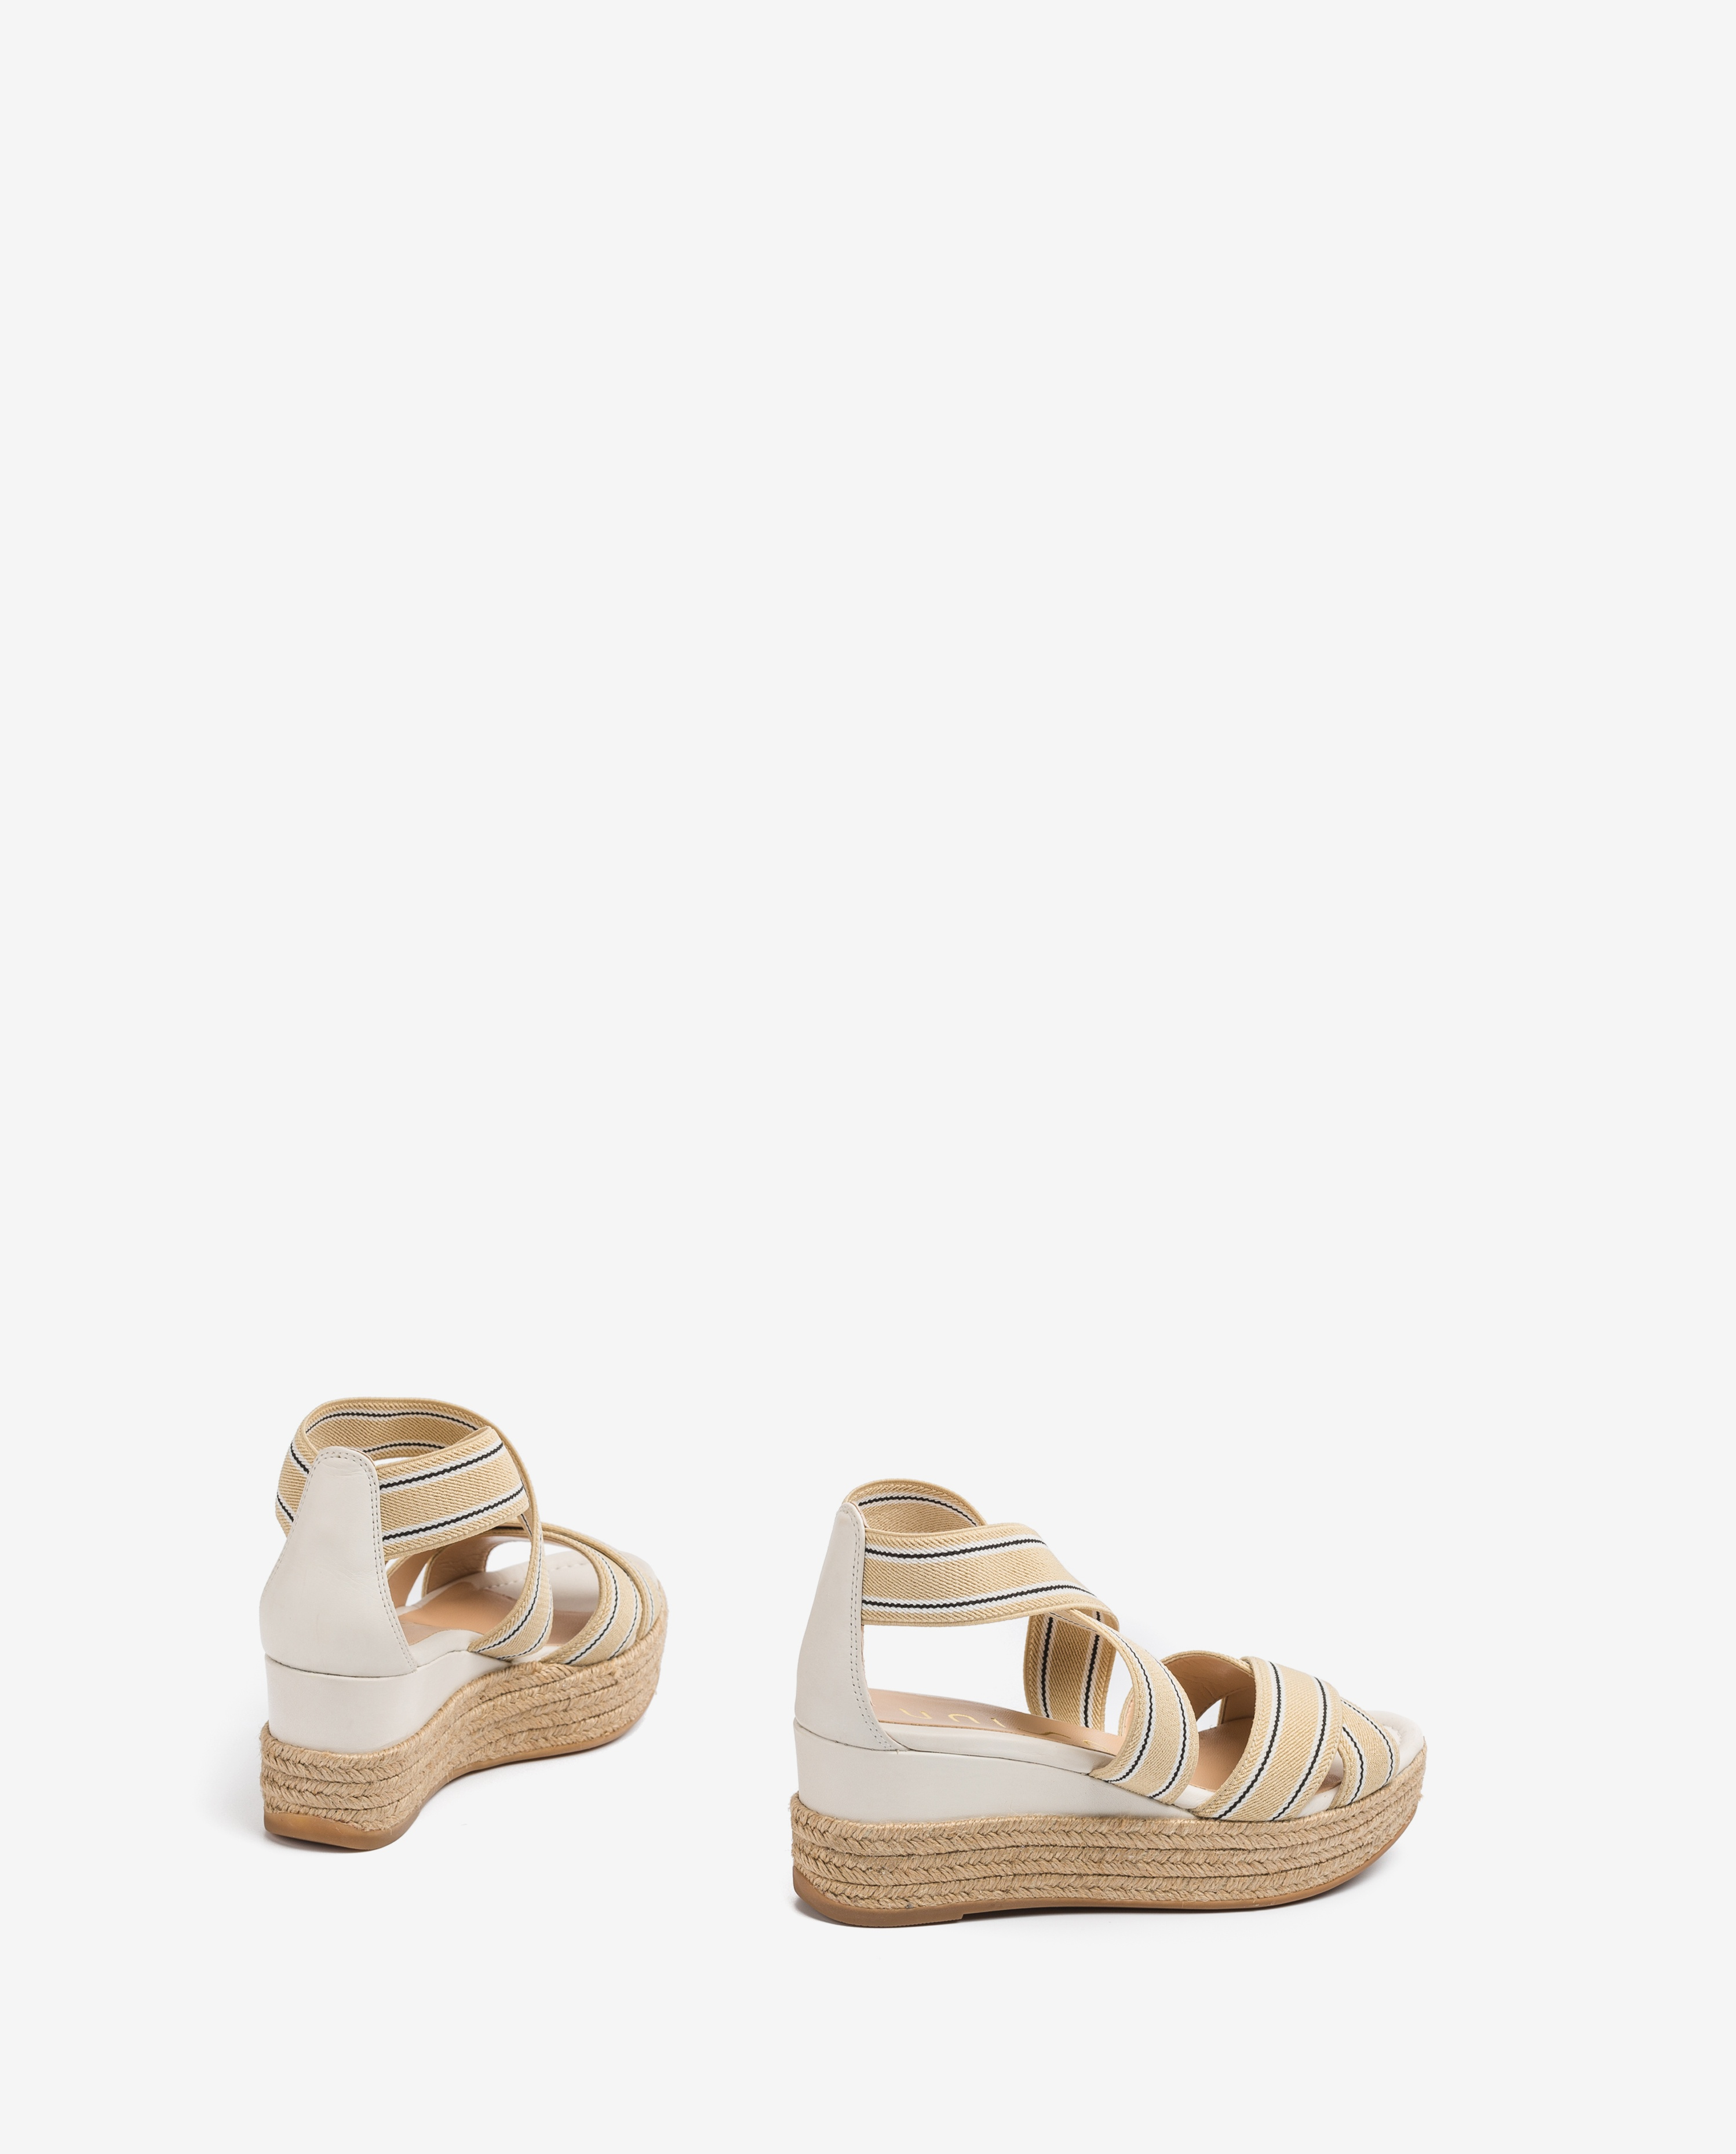 UNISA Striped straps sandals KADUR_CAN ivory 2